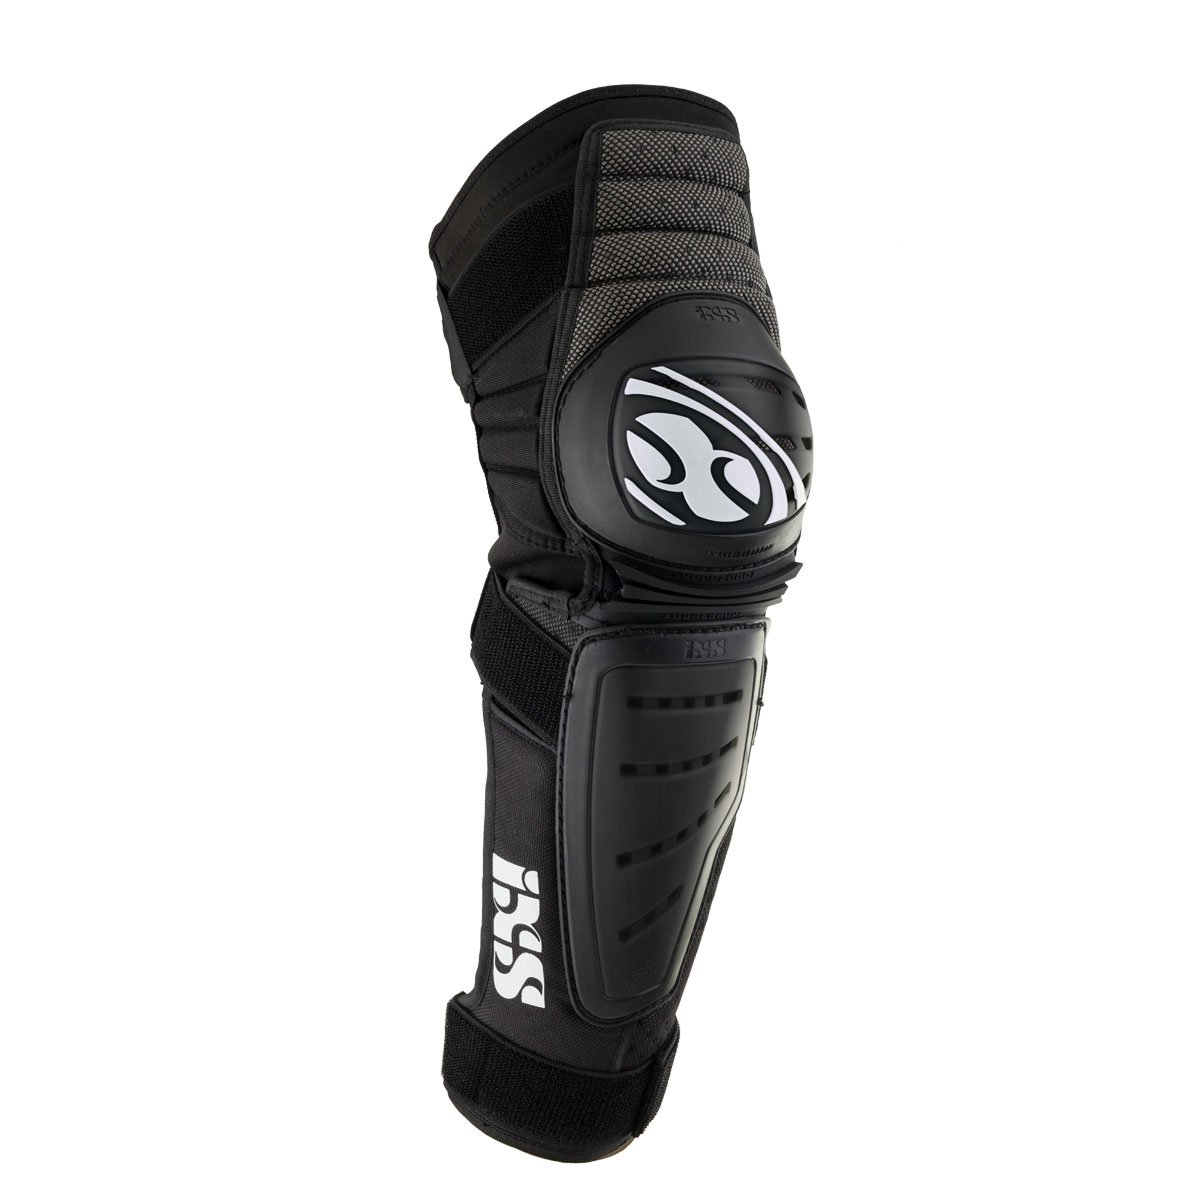 IXS Cleaver Knee/Shin Guards black (Size: XL) leg protector by IXS (Image #1)